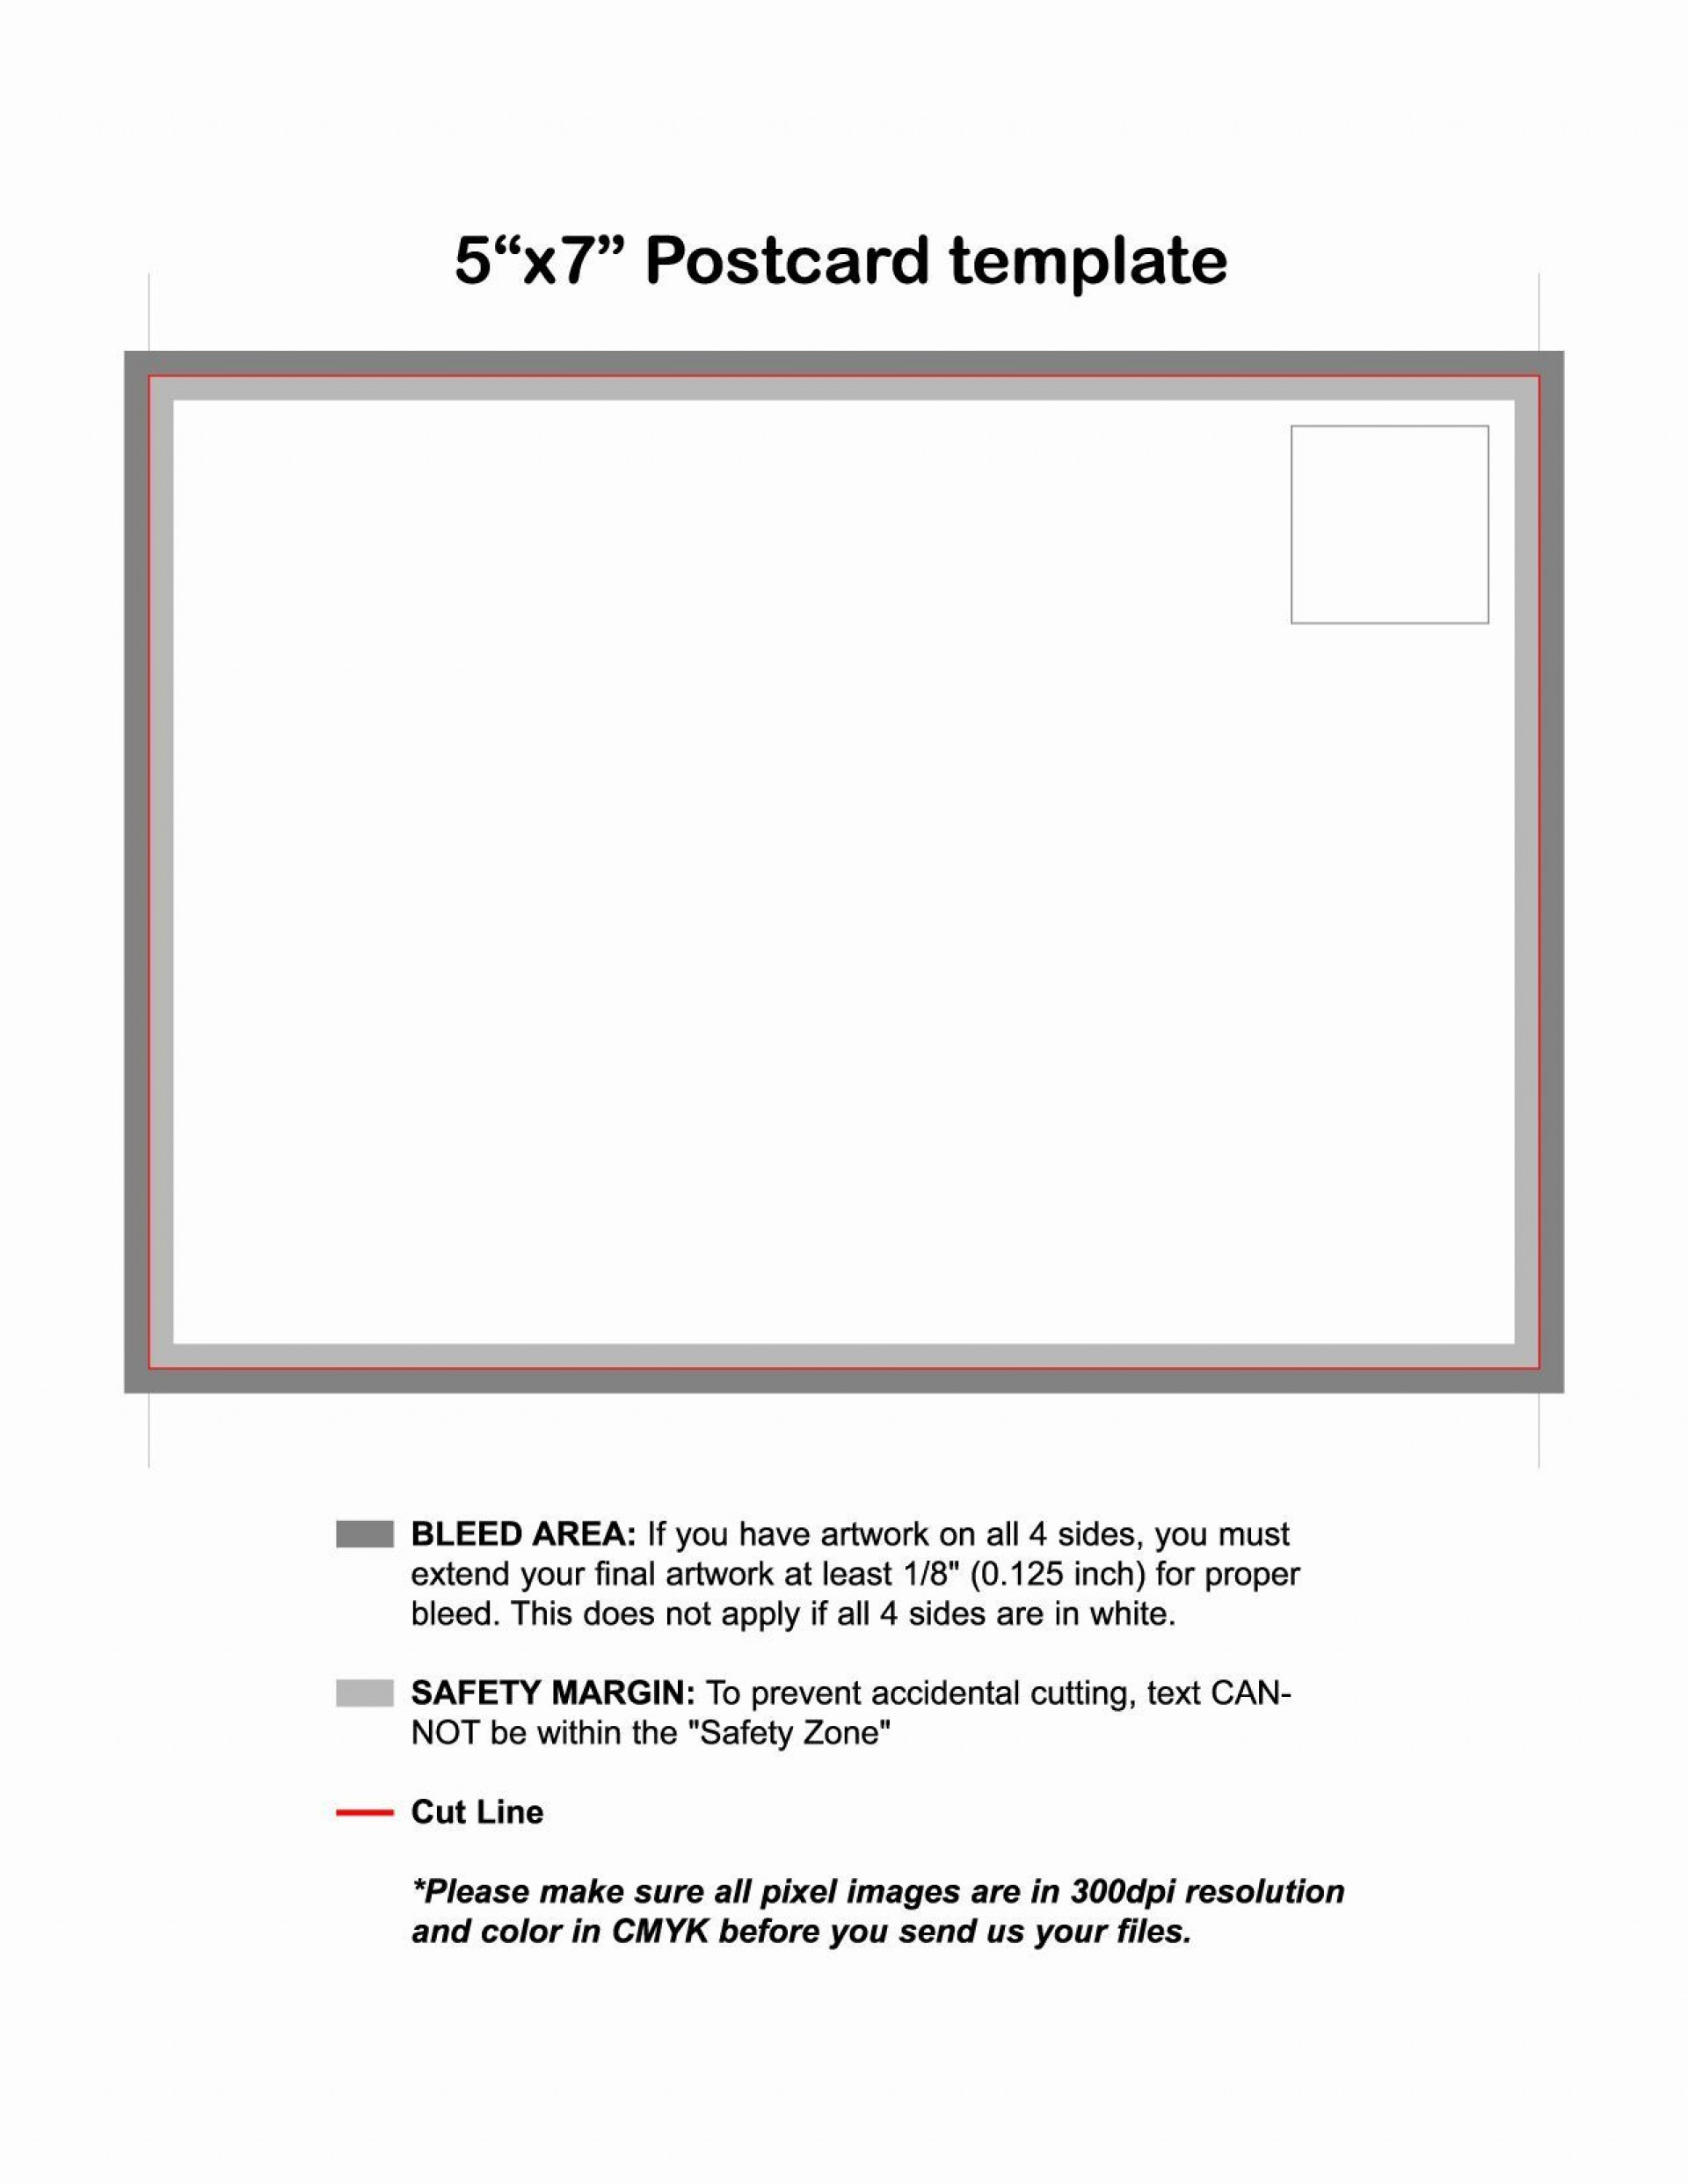 007 Unique 5 X 7 Postcard Template Microsoft Word High Definition 1920